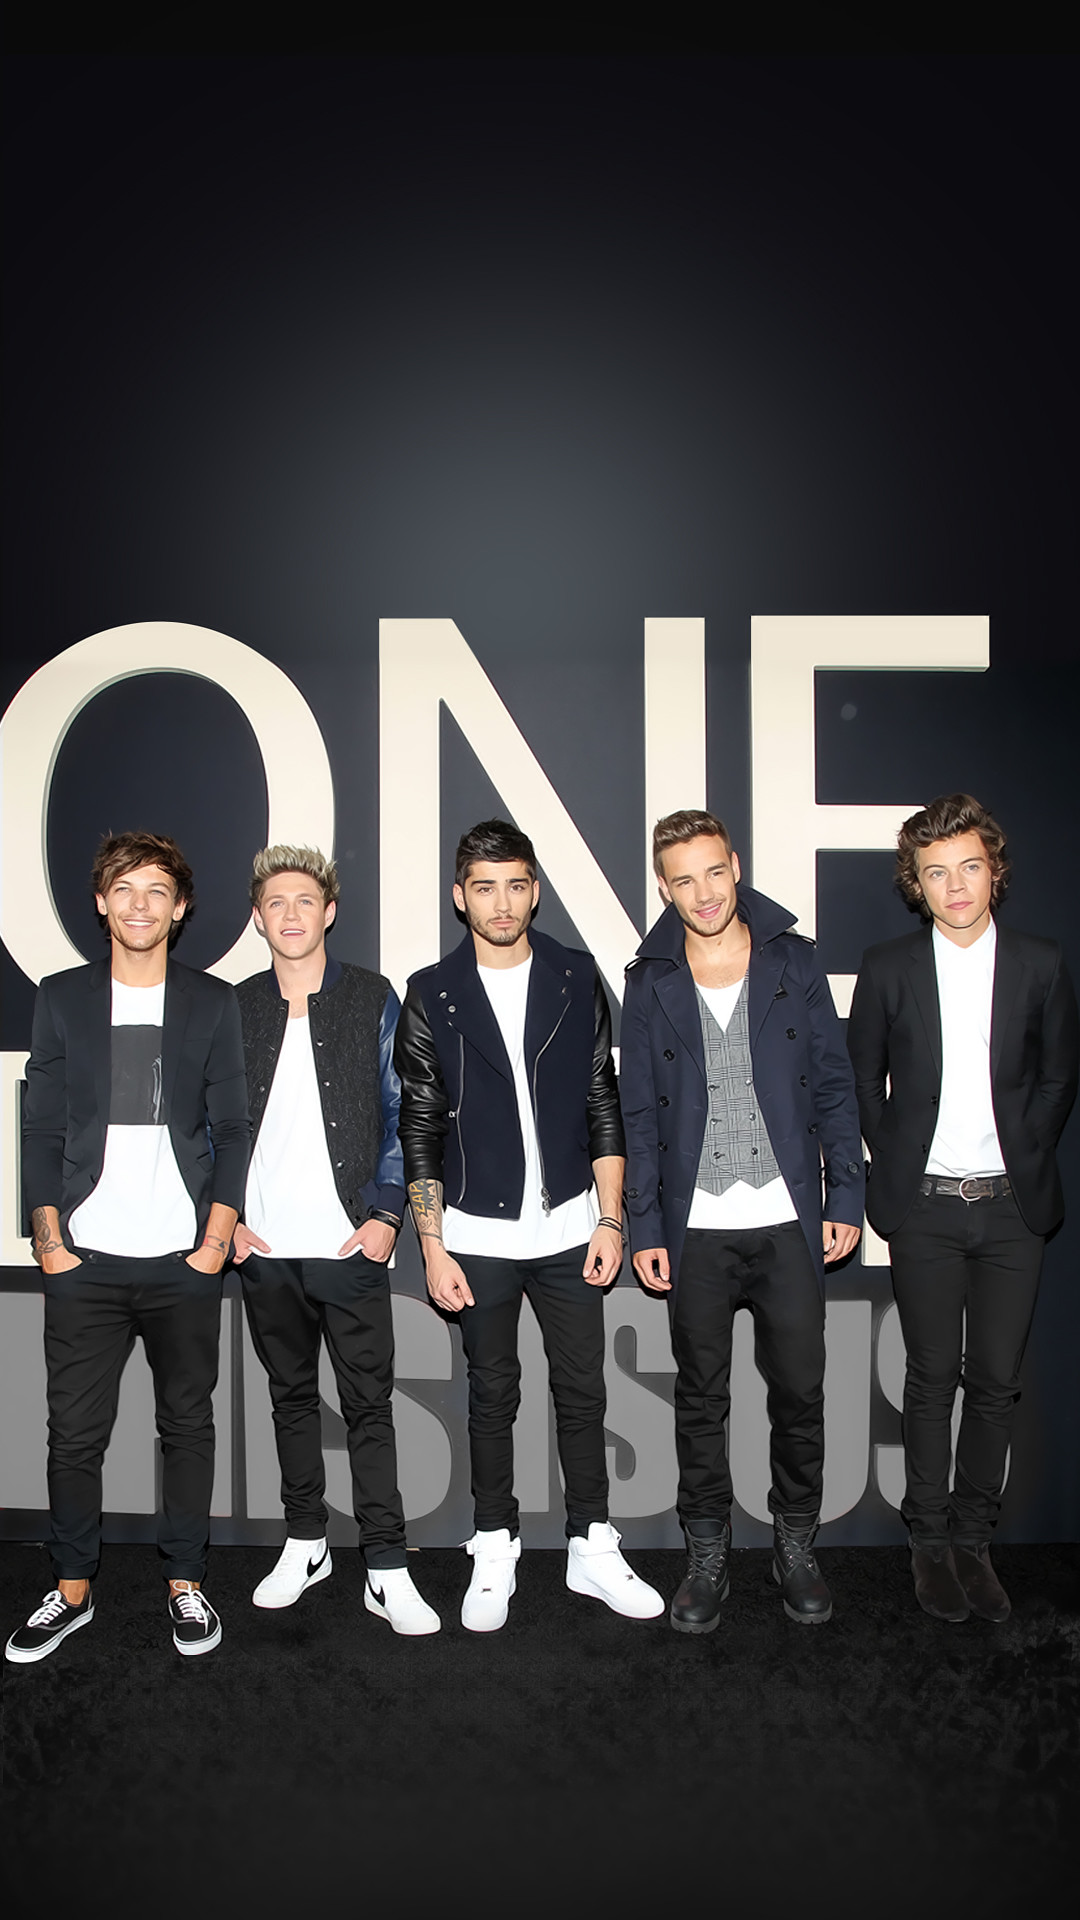 One Direction wallpaper for mobile phones … – One .